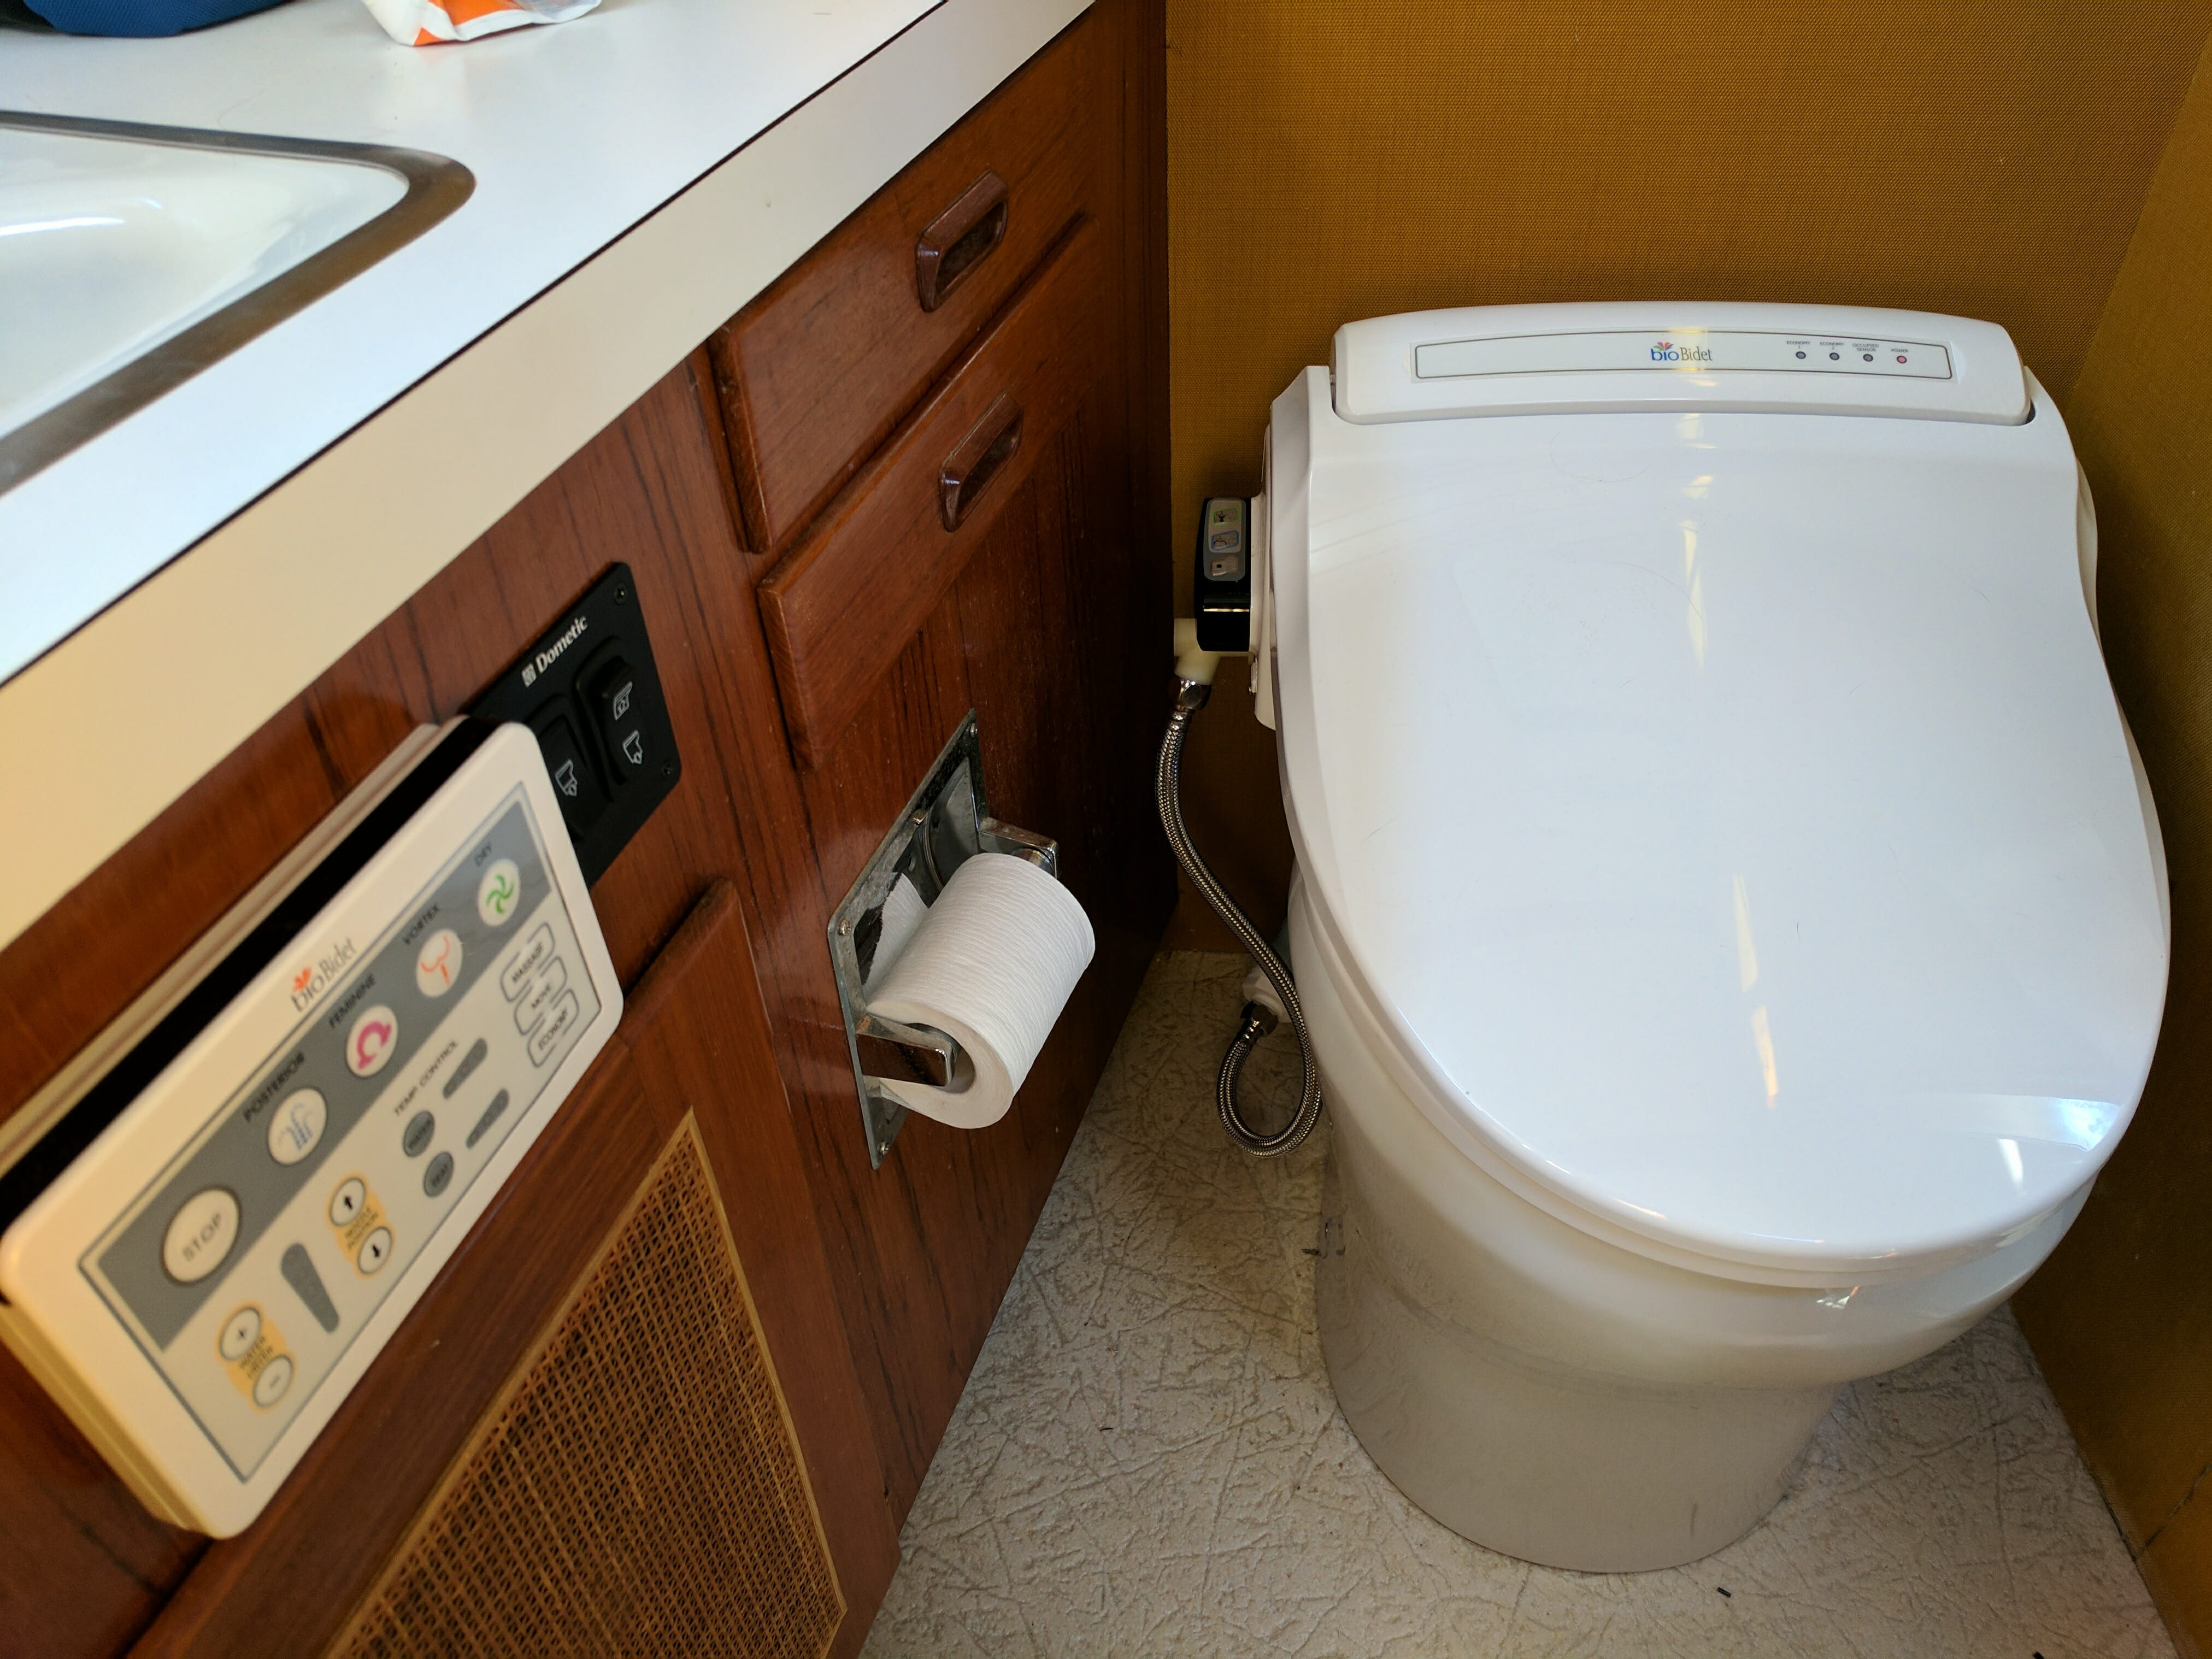 The Boat Bidet - Nomadic Research Labs